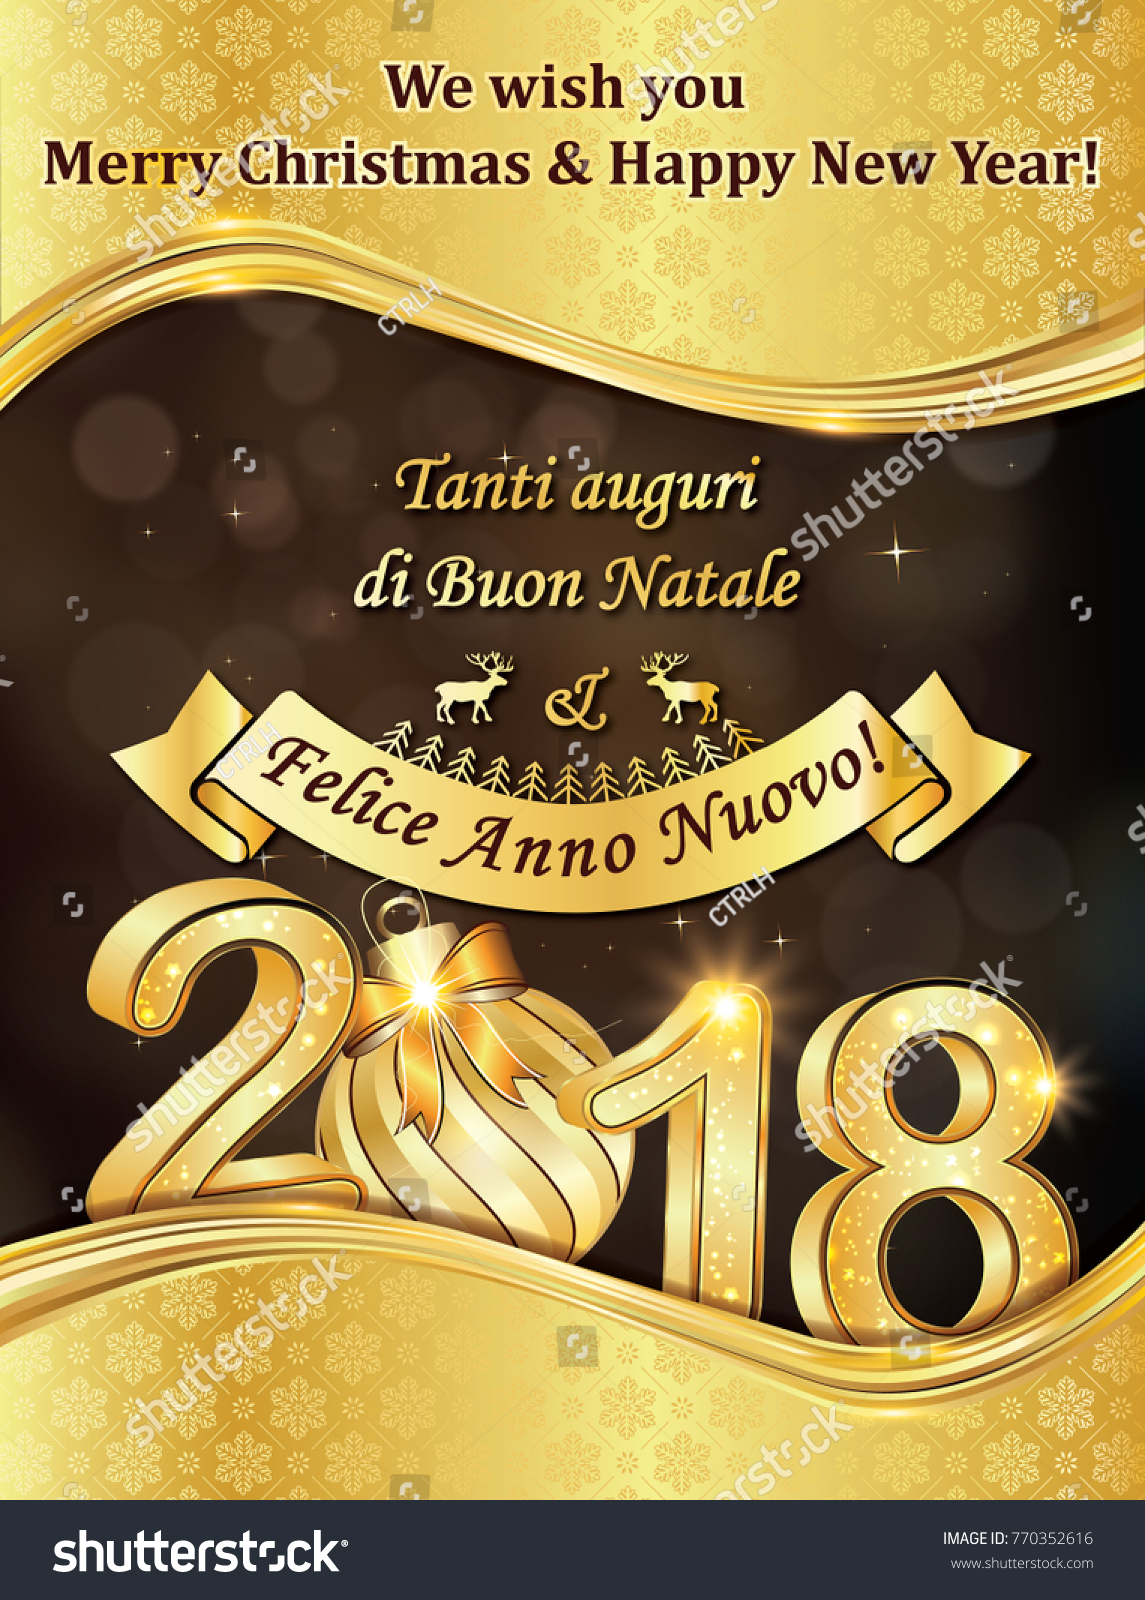 Greeting card 2018 text italian english stock illustration 770352616 greeting card 2018 with text in italian and english designed for the holiday season m4hsunfo